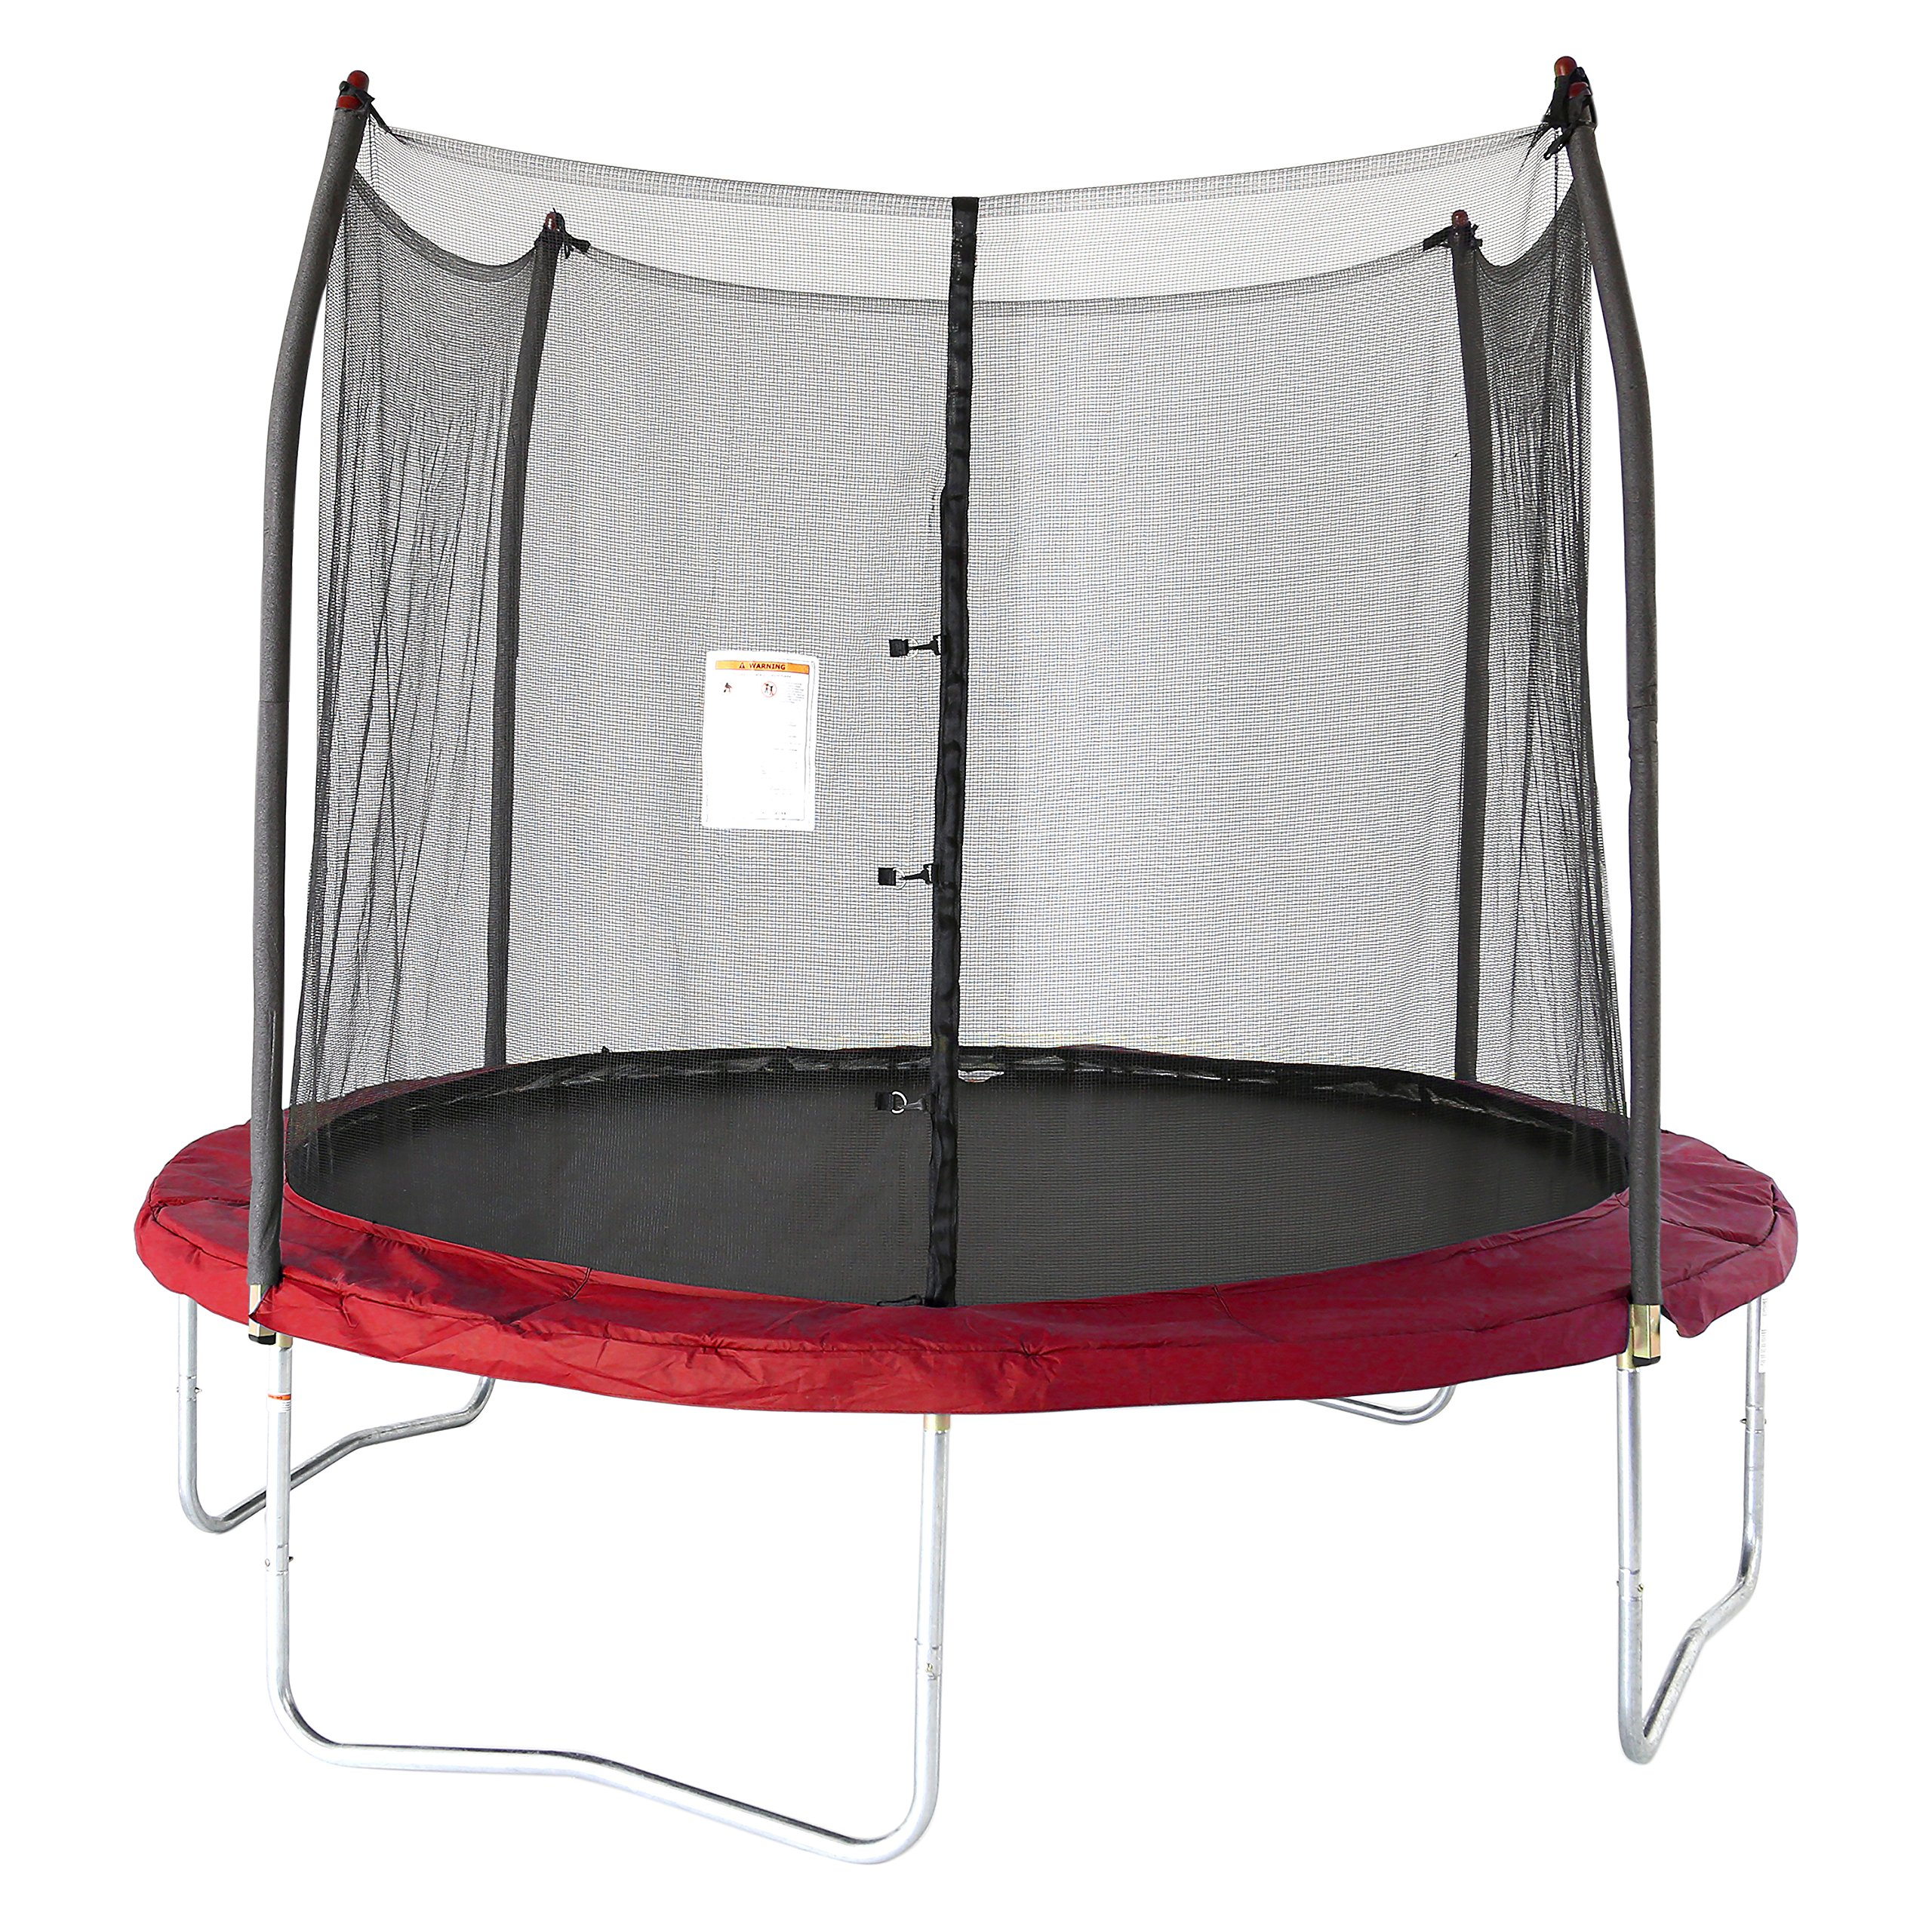 Skywalker Trampolines 10 -Foot Round Trampoline and Enclosure with spring, Red